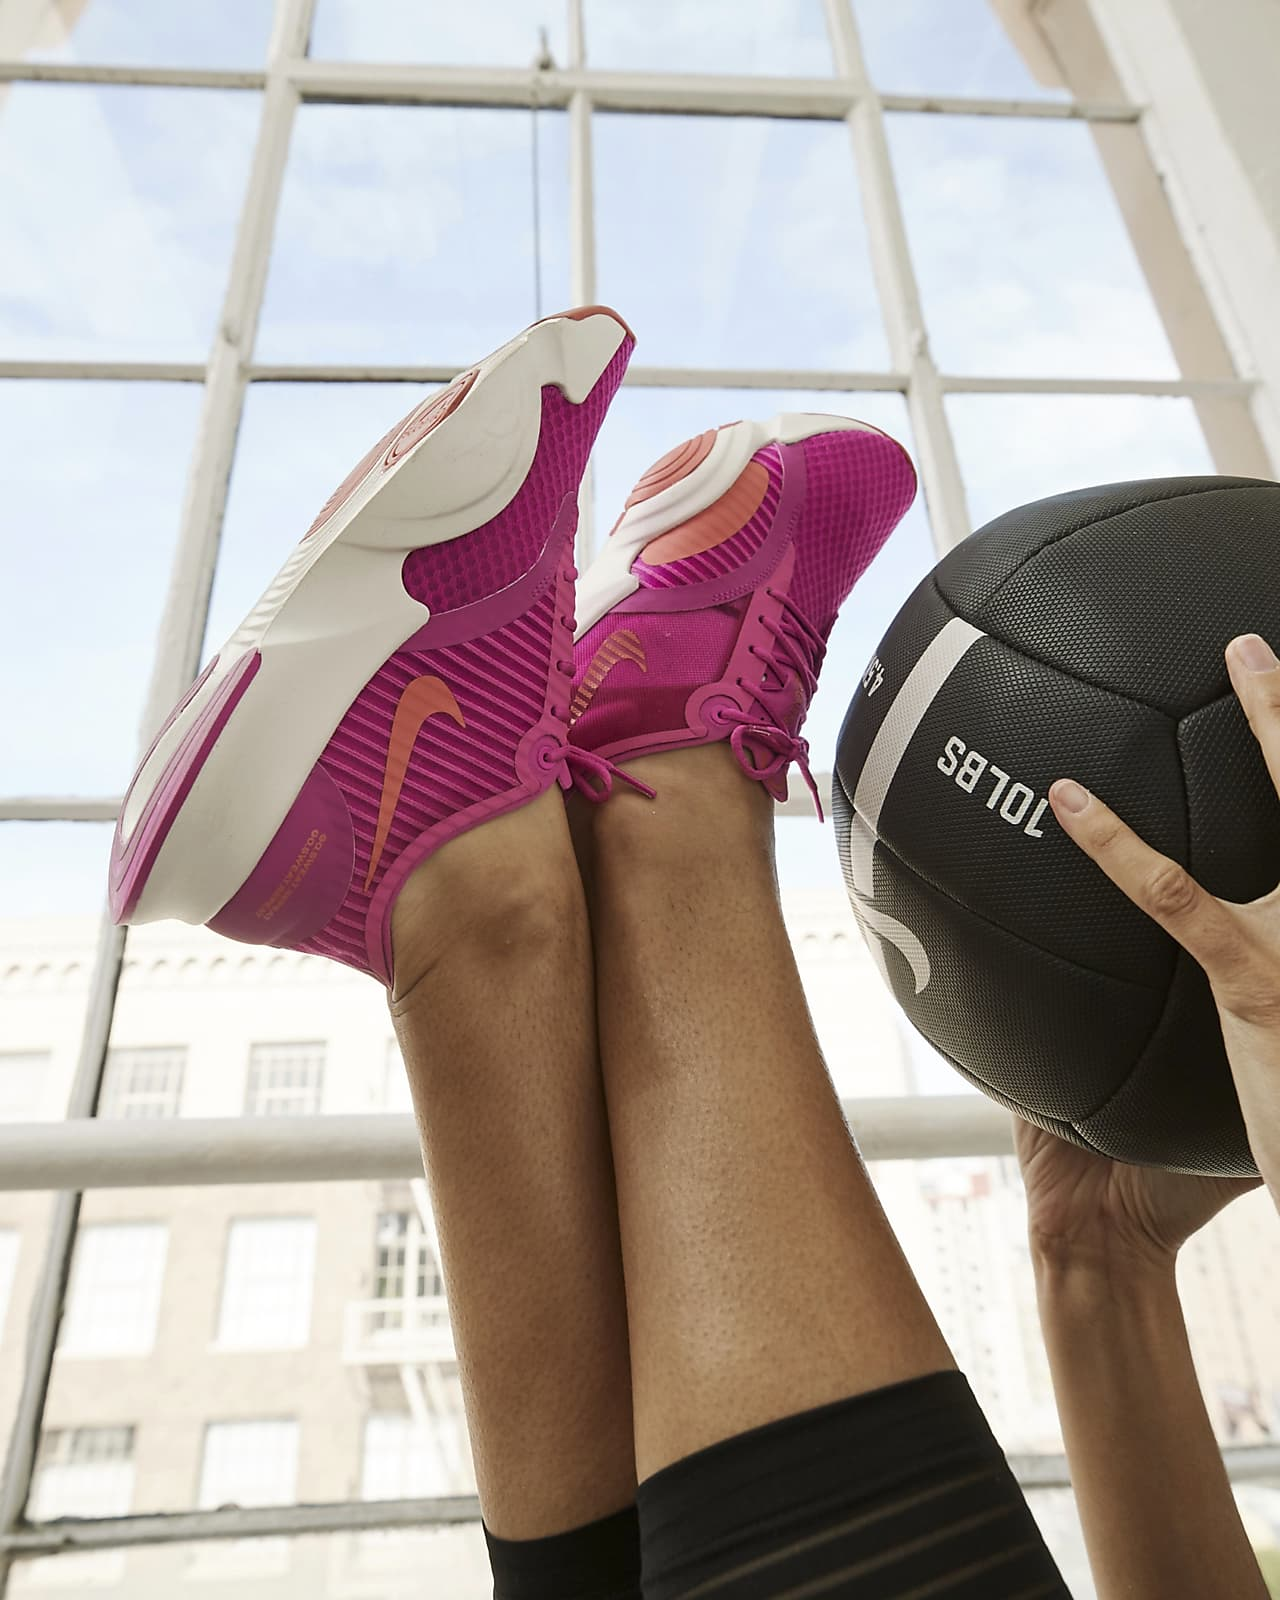 Nike-SuperRep-Go..-1 +80 Most Inspiring Workout Shoes Ideas for Women